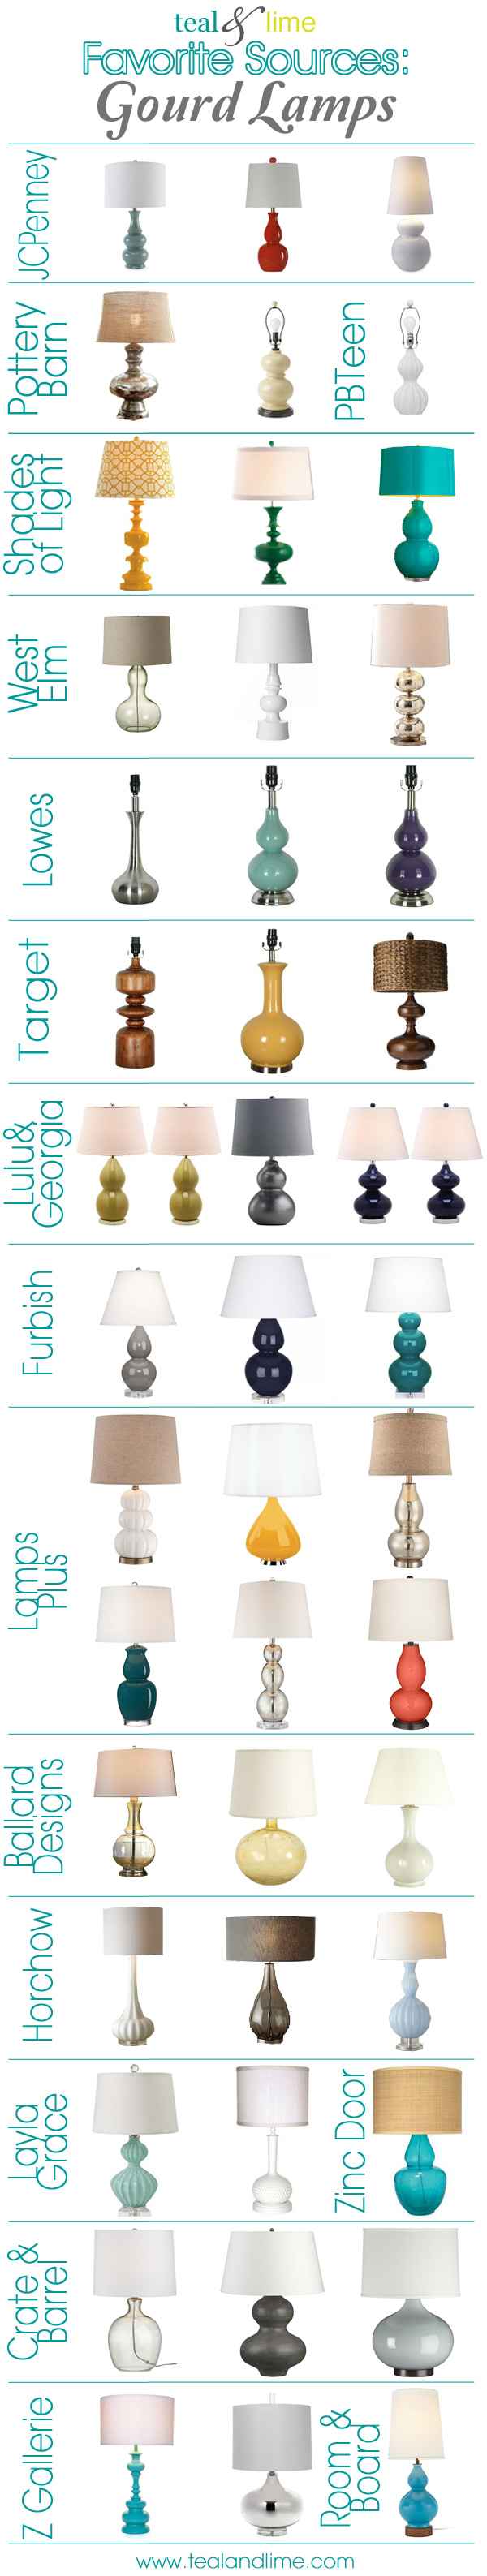 Favorite Sources Gourd Lamps School Of Decorating By